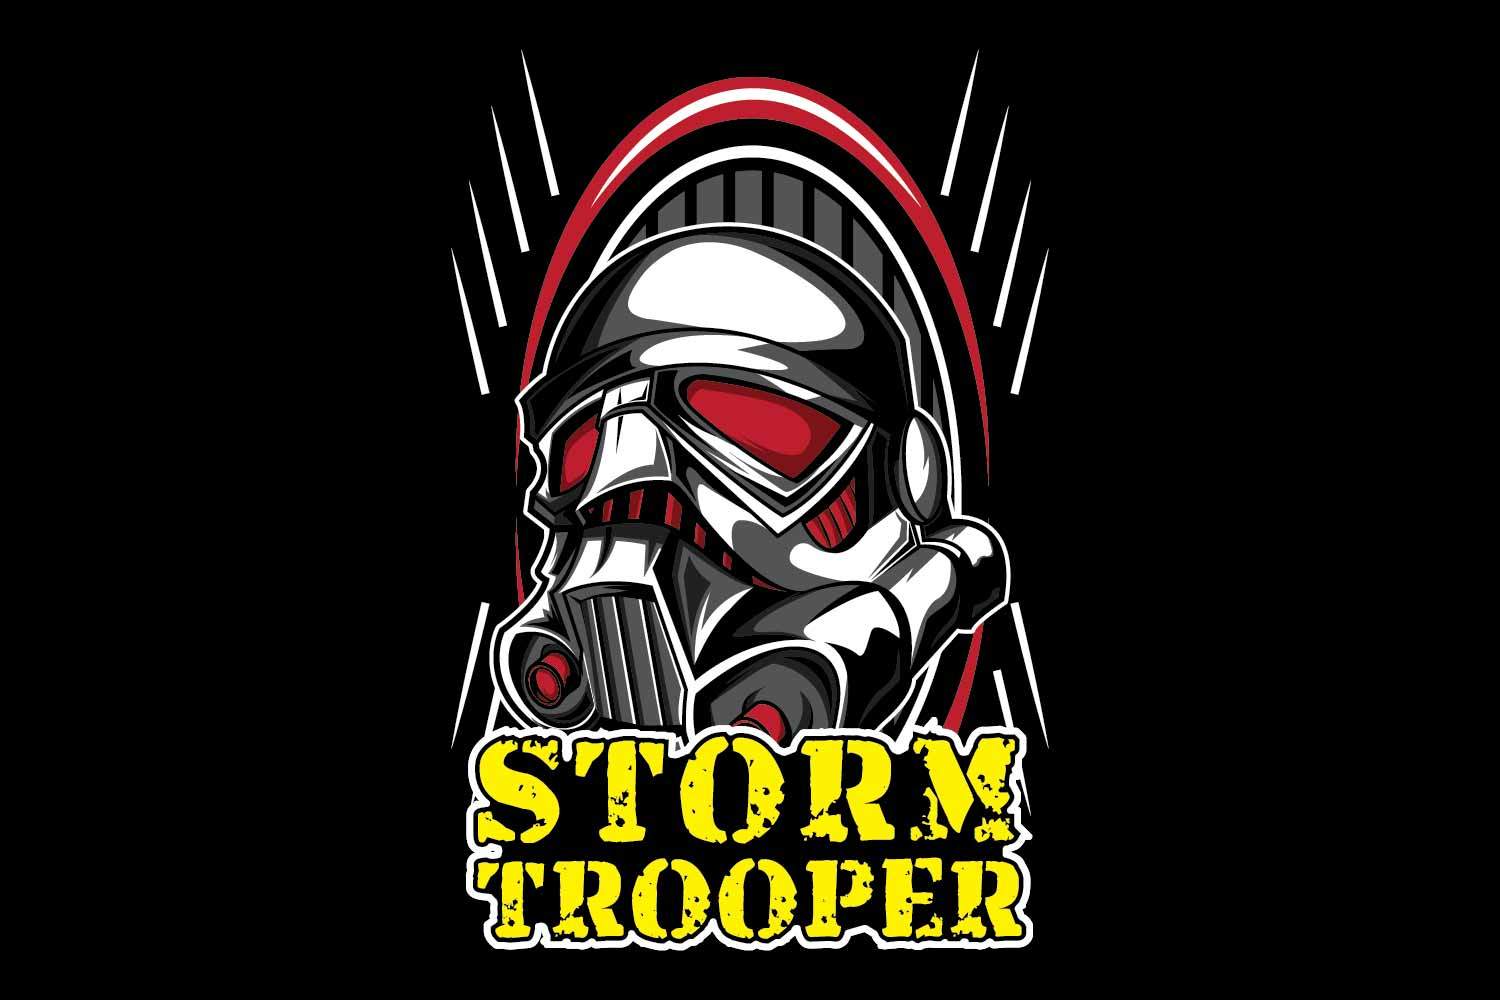 Trooper cloth design template example image 1